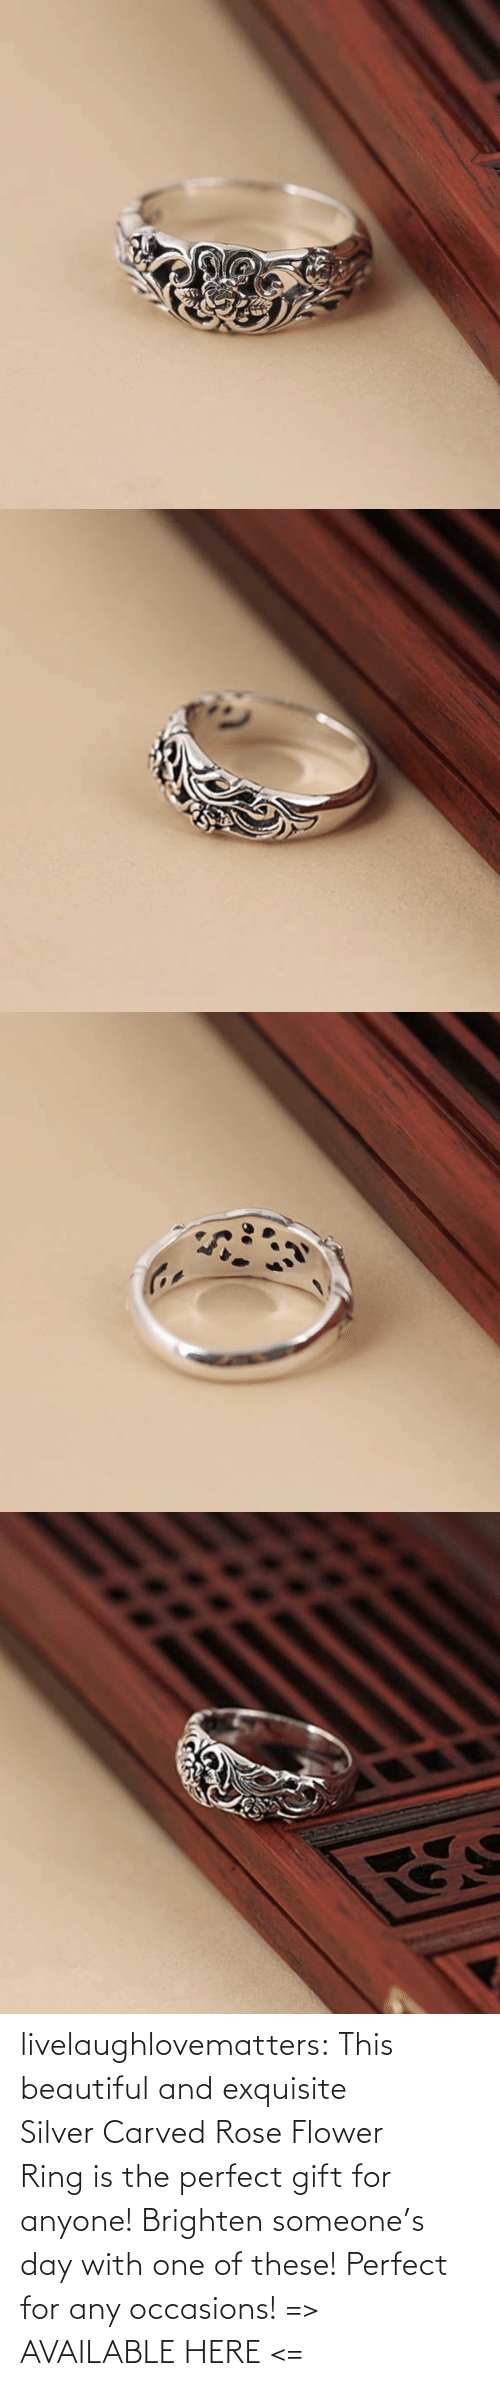 ring: livelaughlovematters: This beautiful and exquisite SilverCarved Rose Flower Ringis the perfect gift for anyone! Brighten someone's day with one of these! Perfect for any occasions!  => AVAILABLE HERE <=